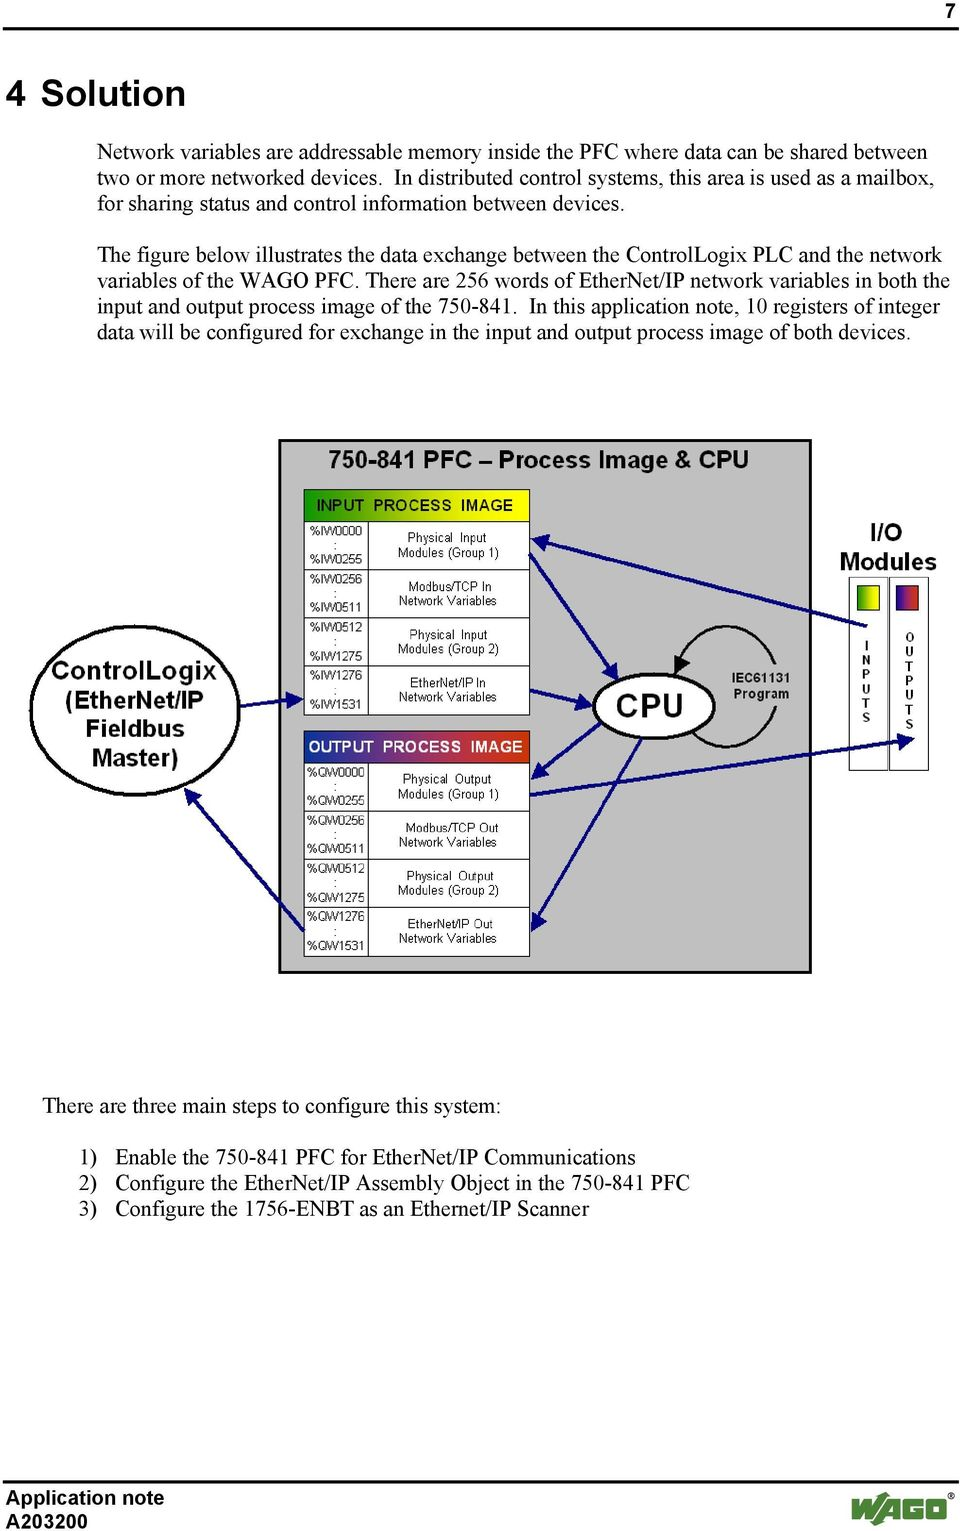 Accessing EtherNet/IP Network Variables in a WAGO with a